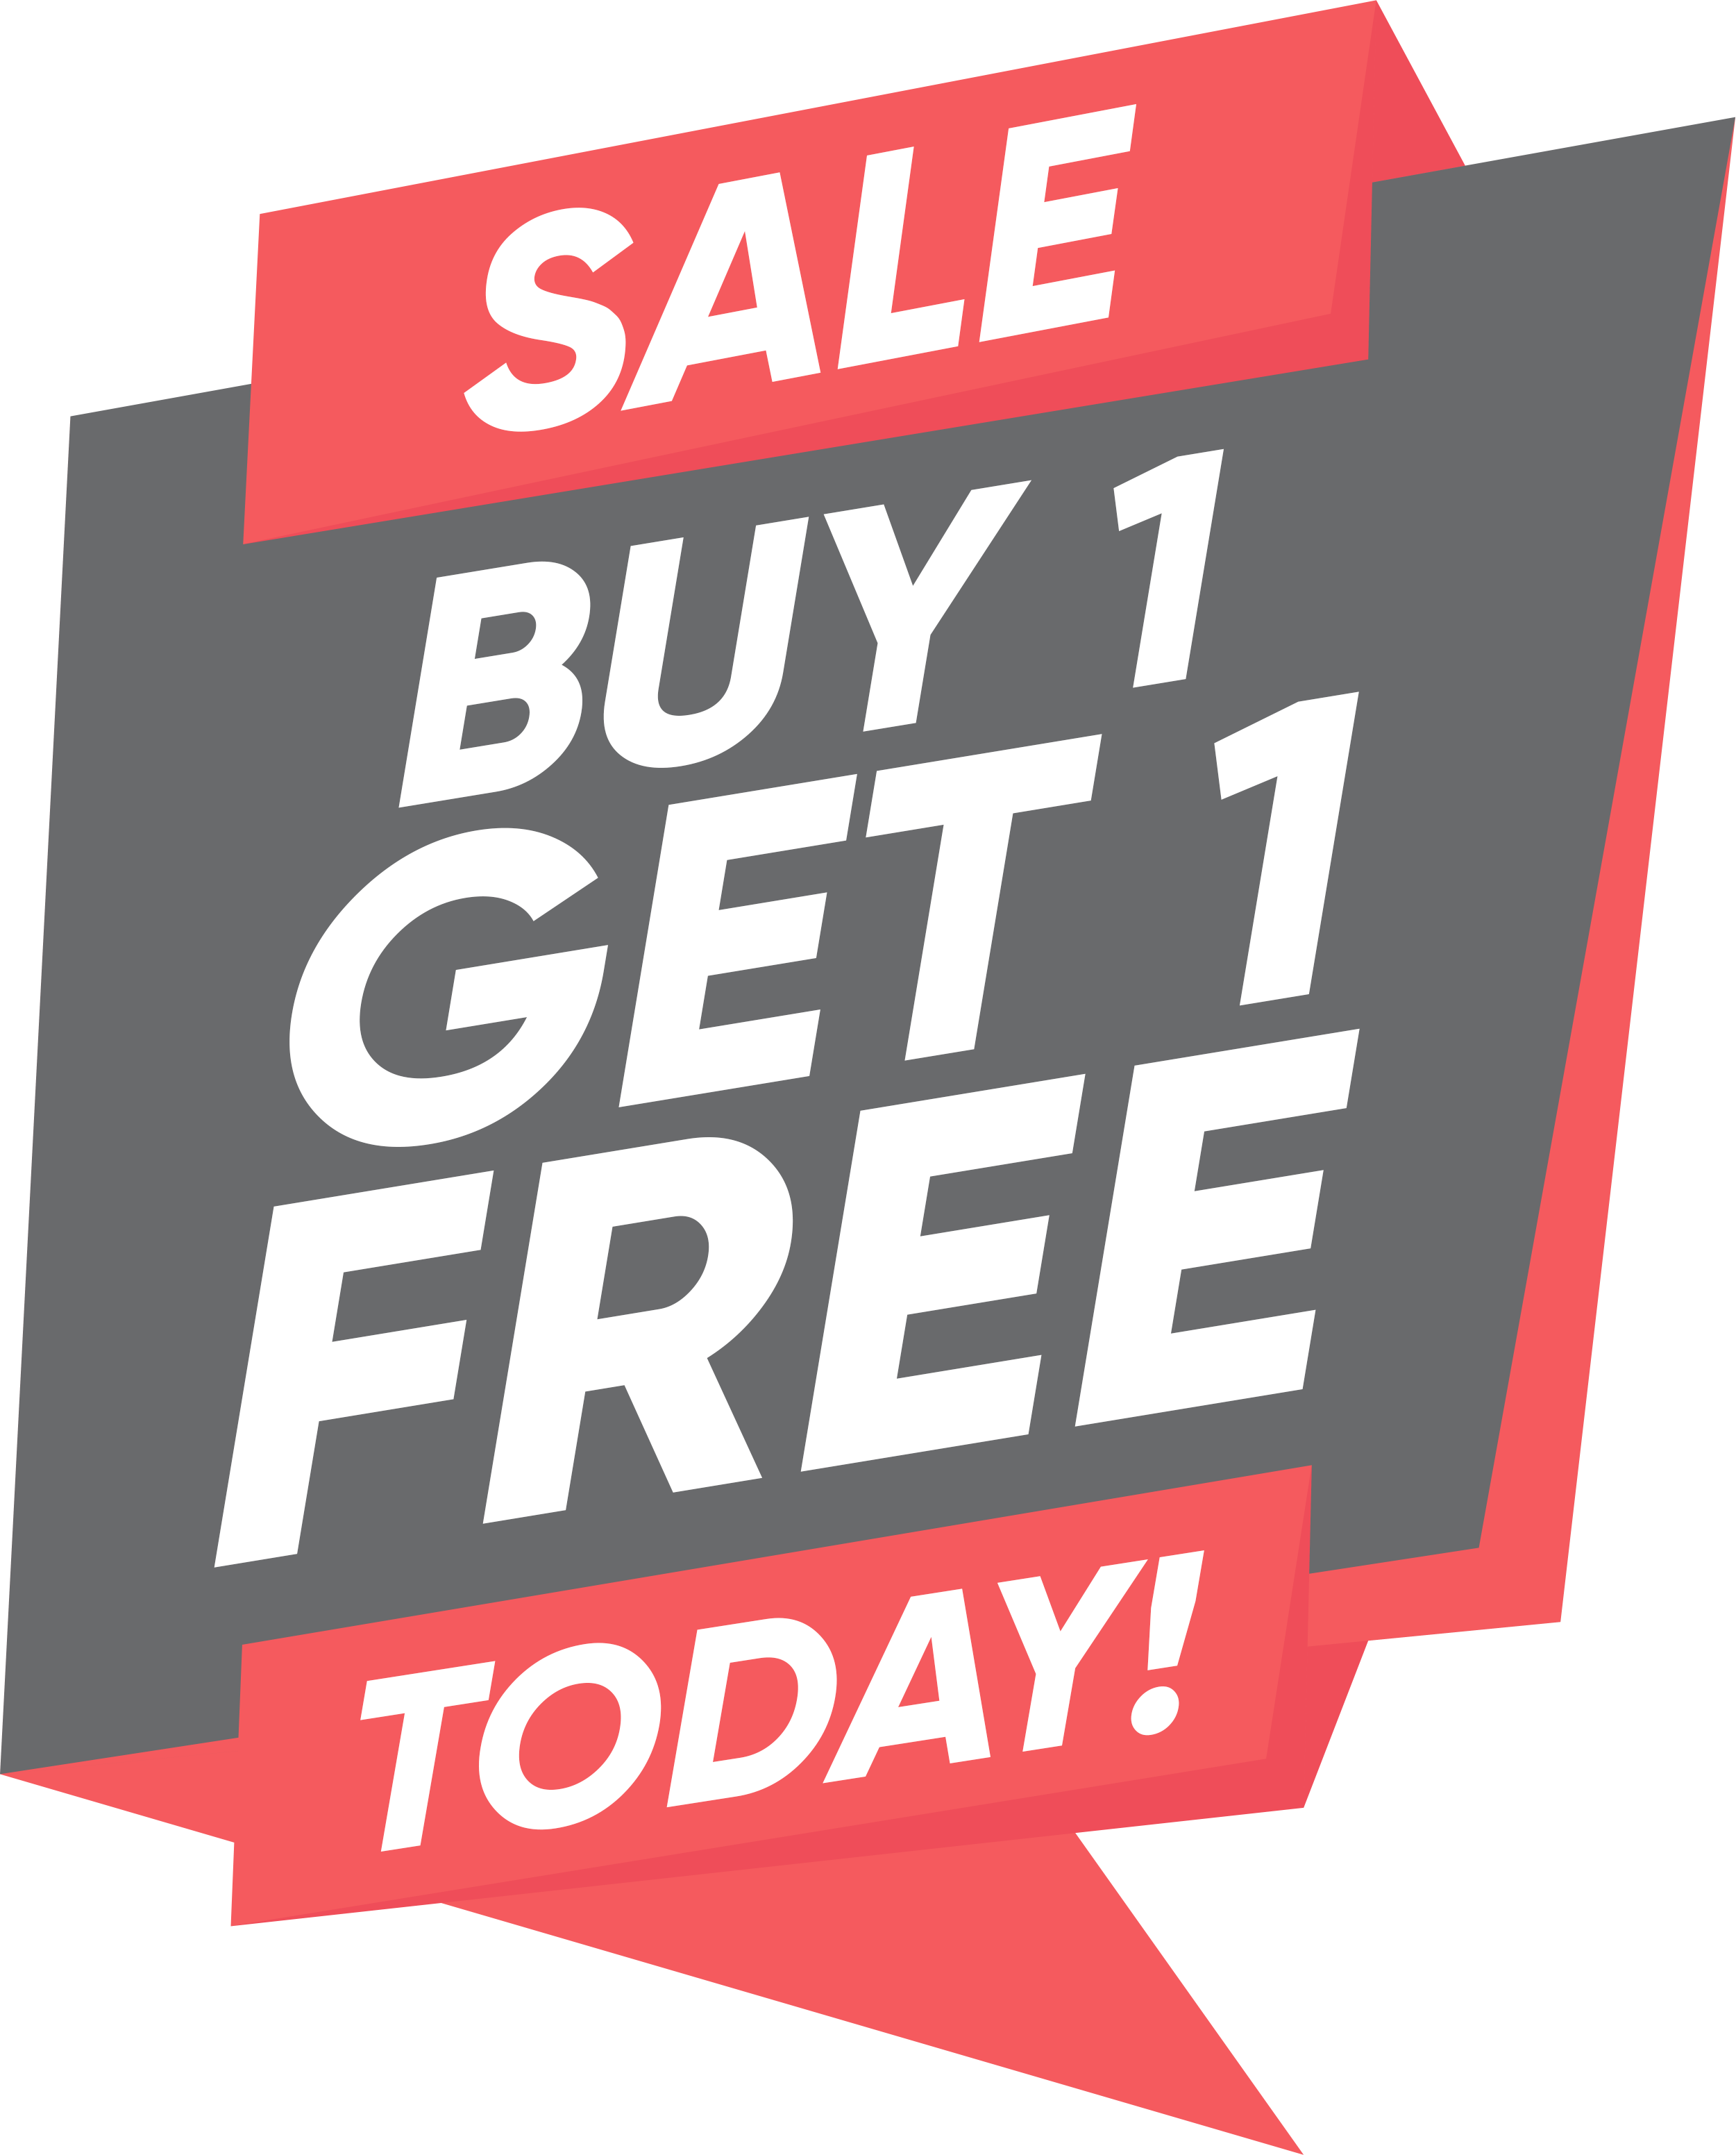 TheThrillz.com Deal - Buy 2 Get 1 Free!